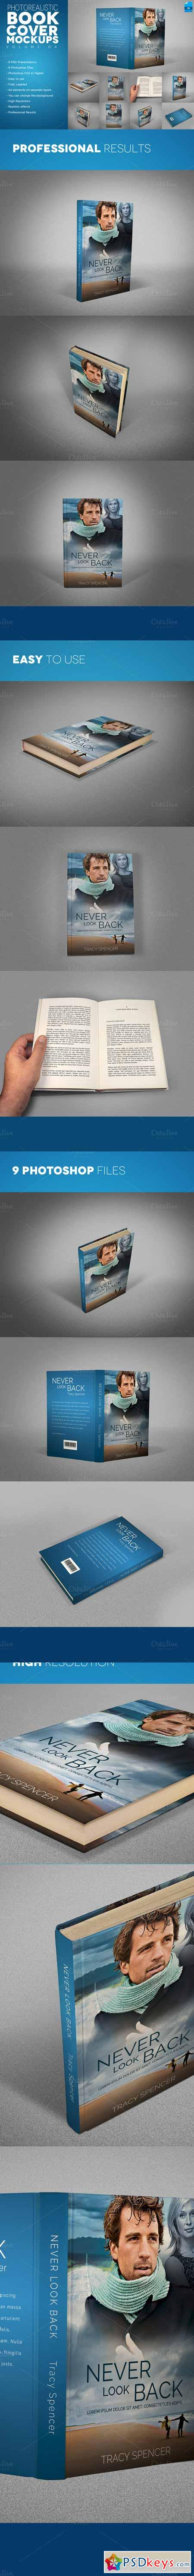 Photorealistic Book Cover Mackups v4 308190